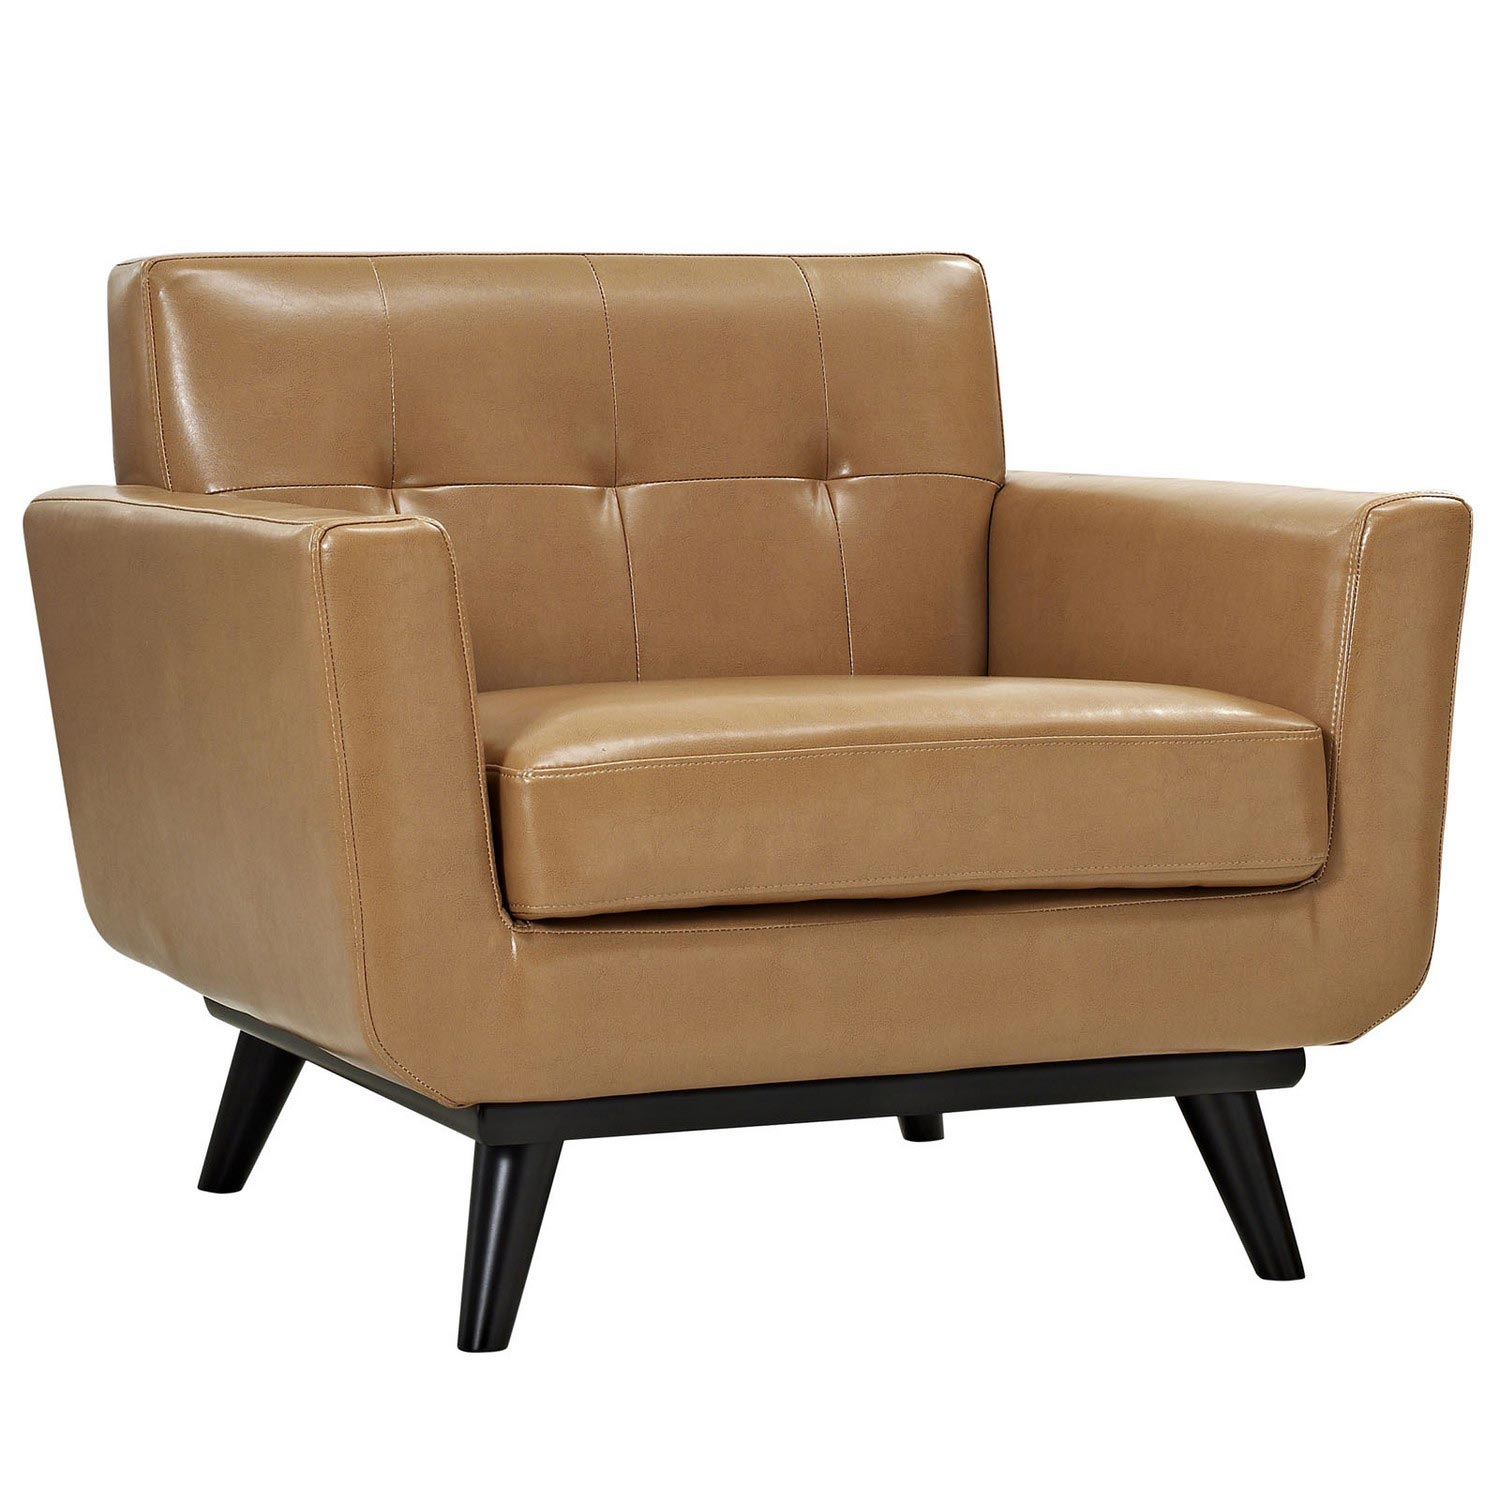 Modway Engage Bonded Leather Armchair - Tan